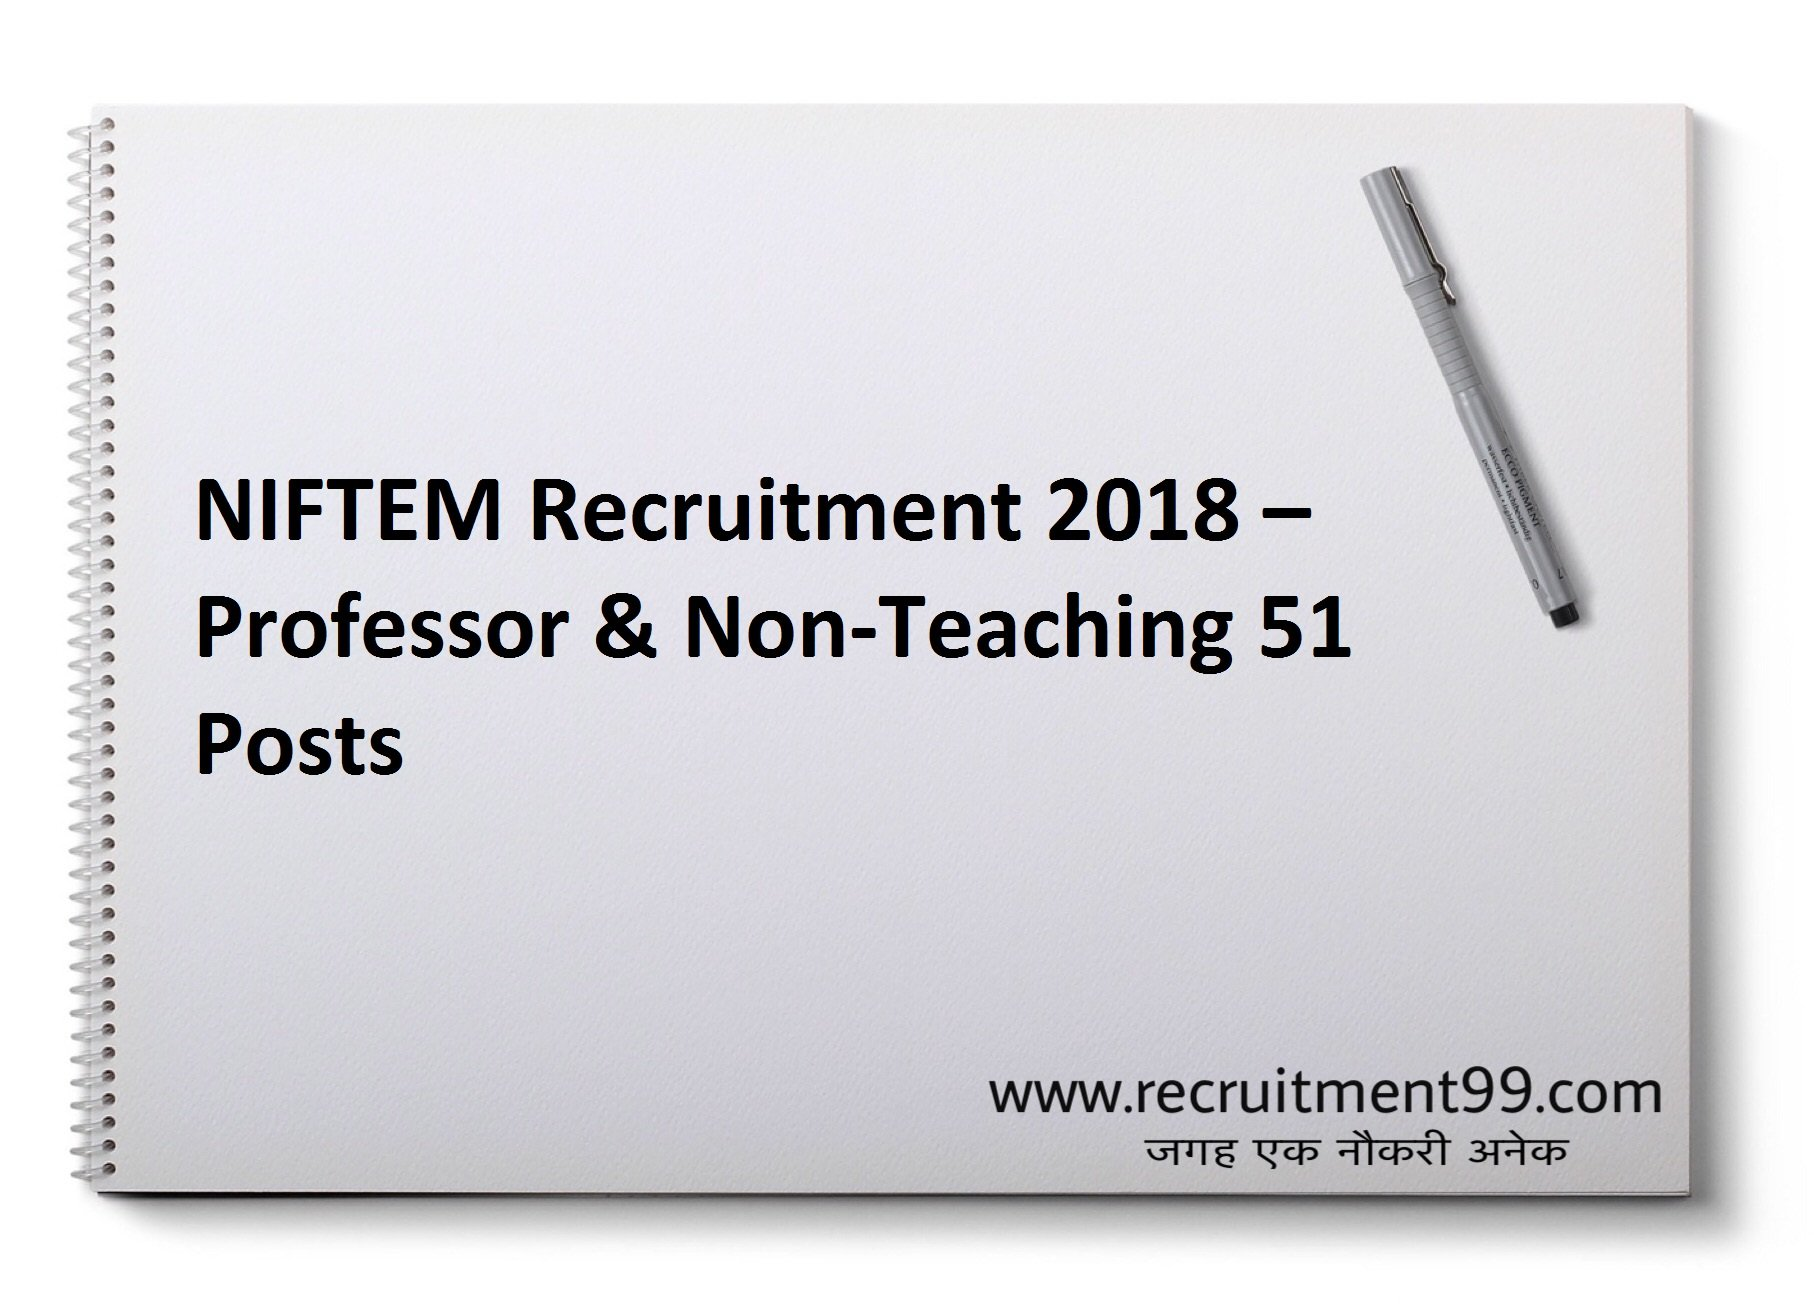 NIFTEM Professor & Non-Teaching Recruitment Admit Card & Result 2018